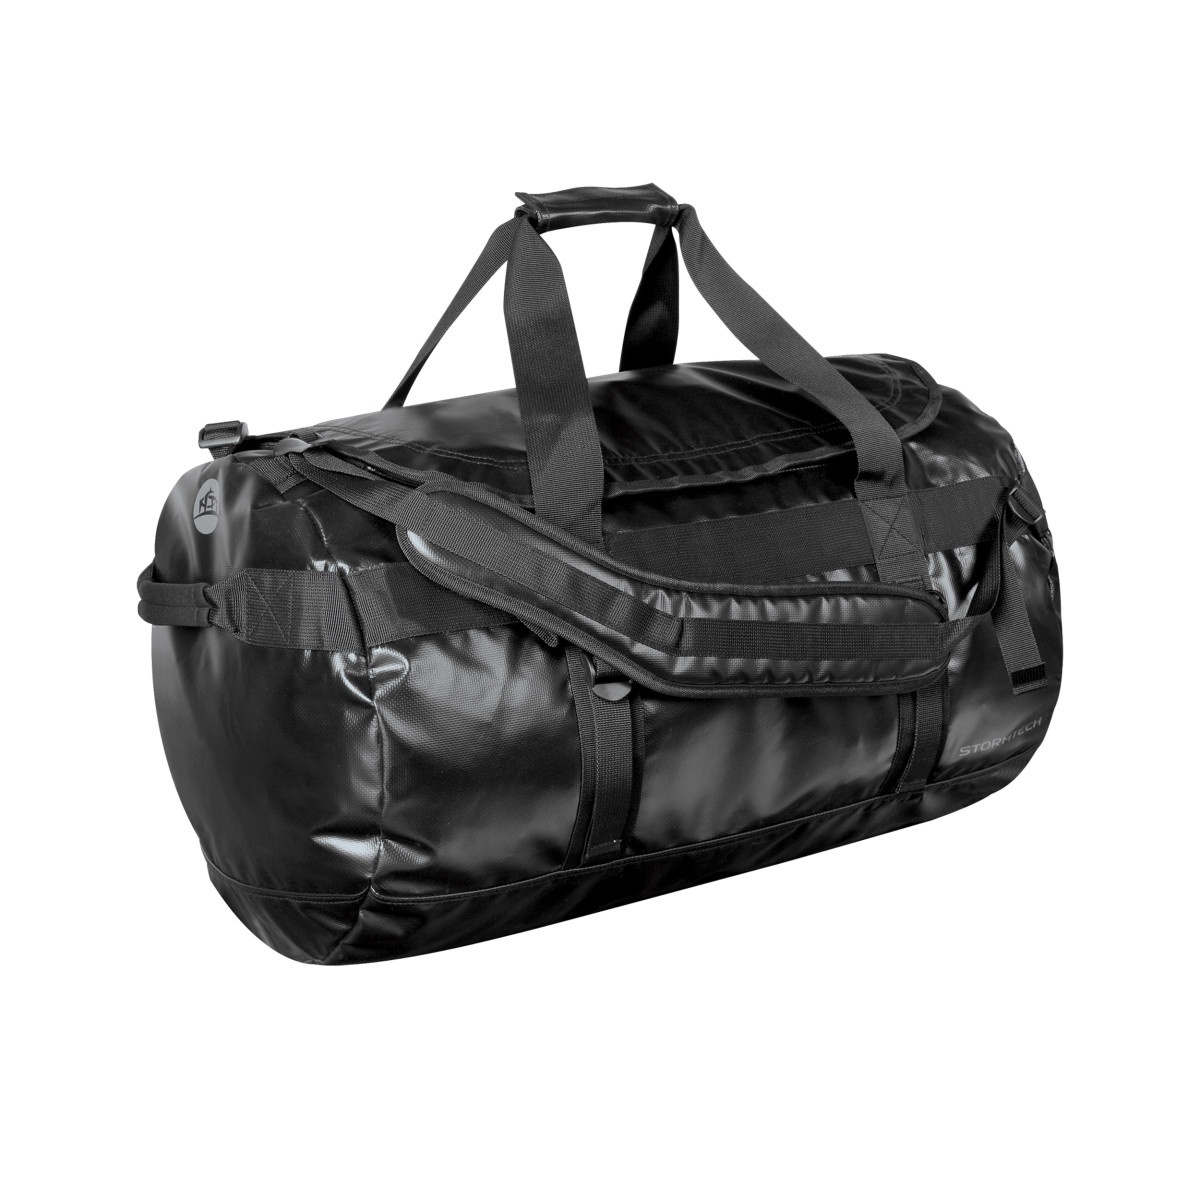 Stormtech Waterproof Gear Holdall Bag (Large) (Pack of 2) (One Size) (Black/Black)